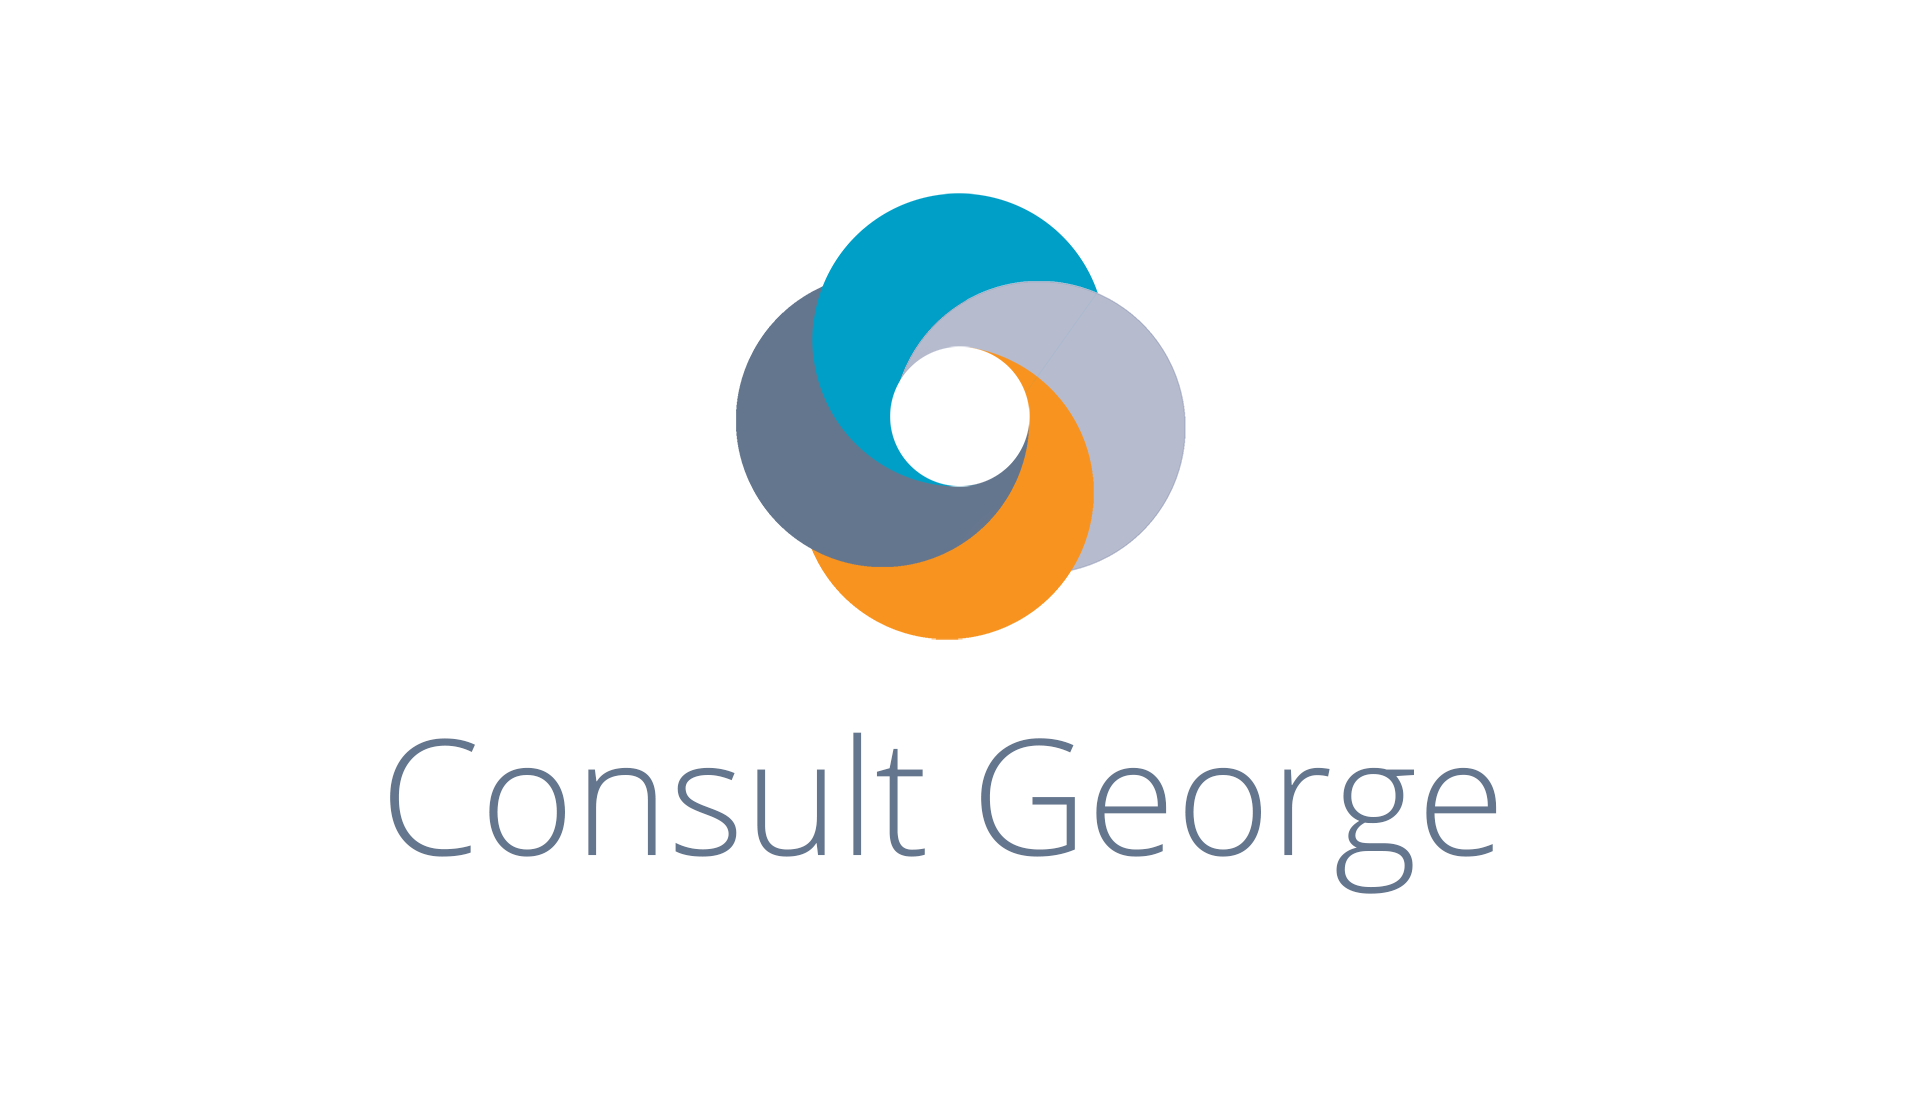 Consult George Pty Ltd, George Nxumalo, Johannesburg, South Africa